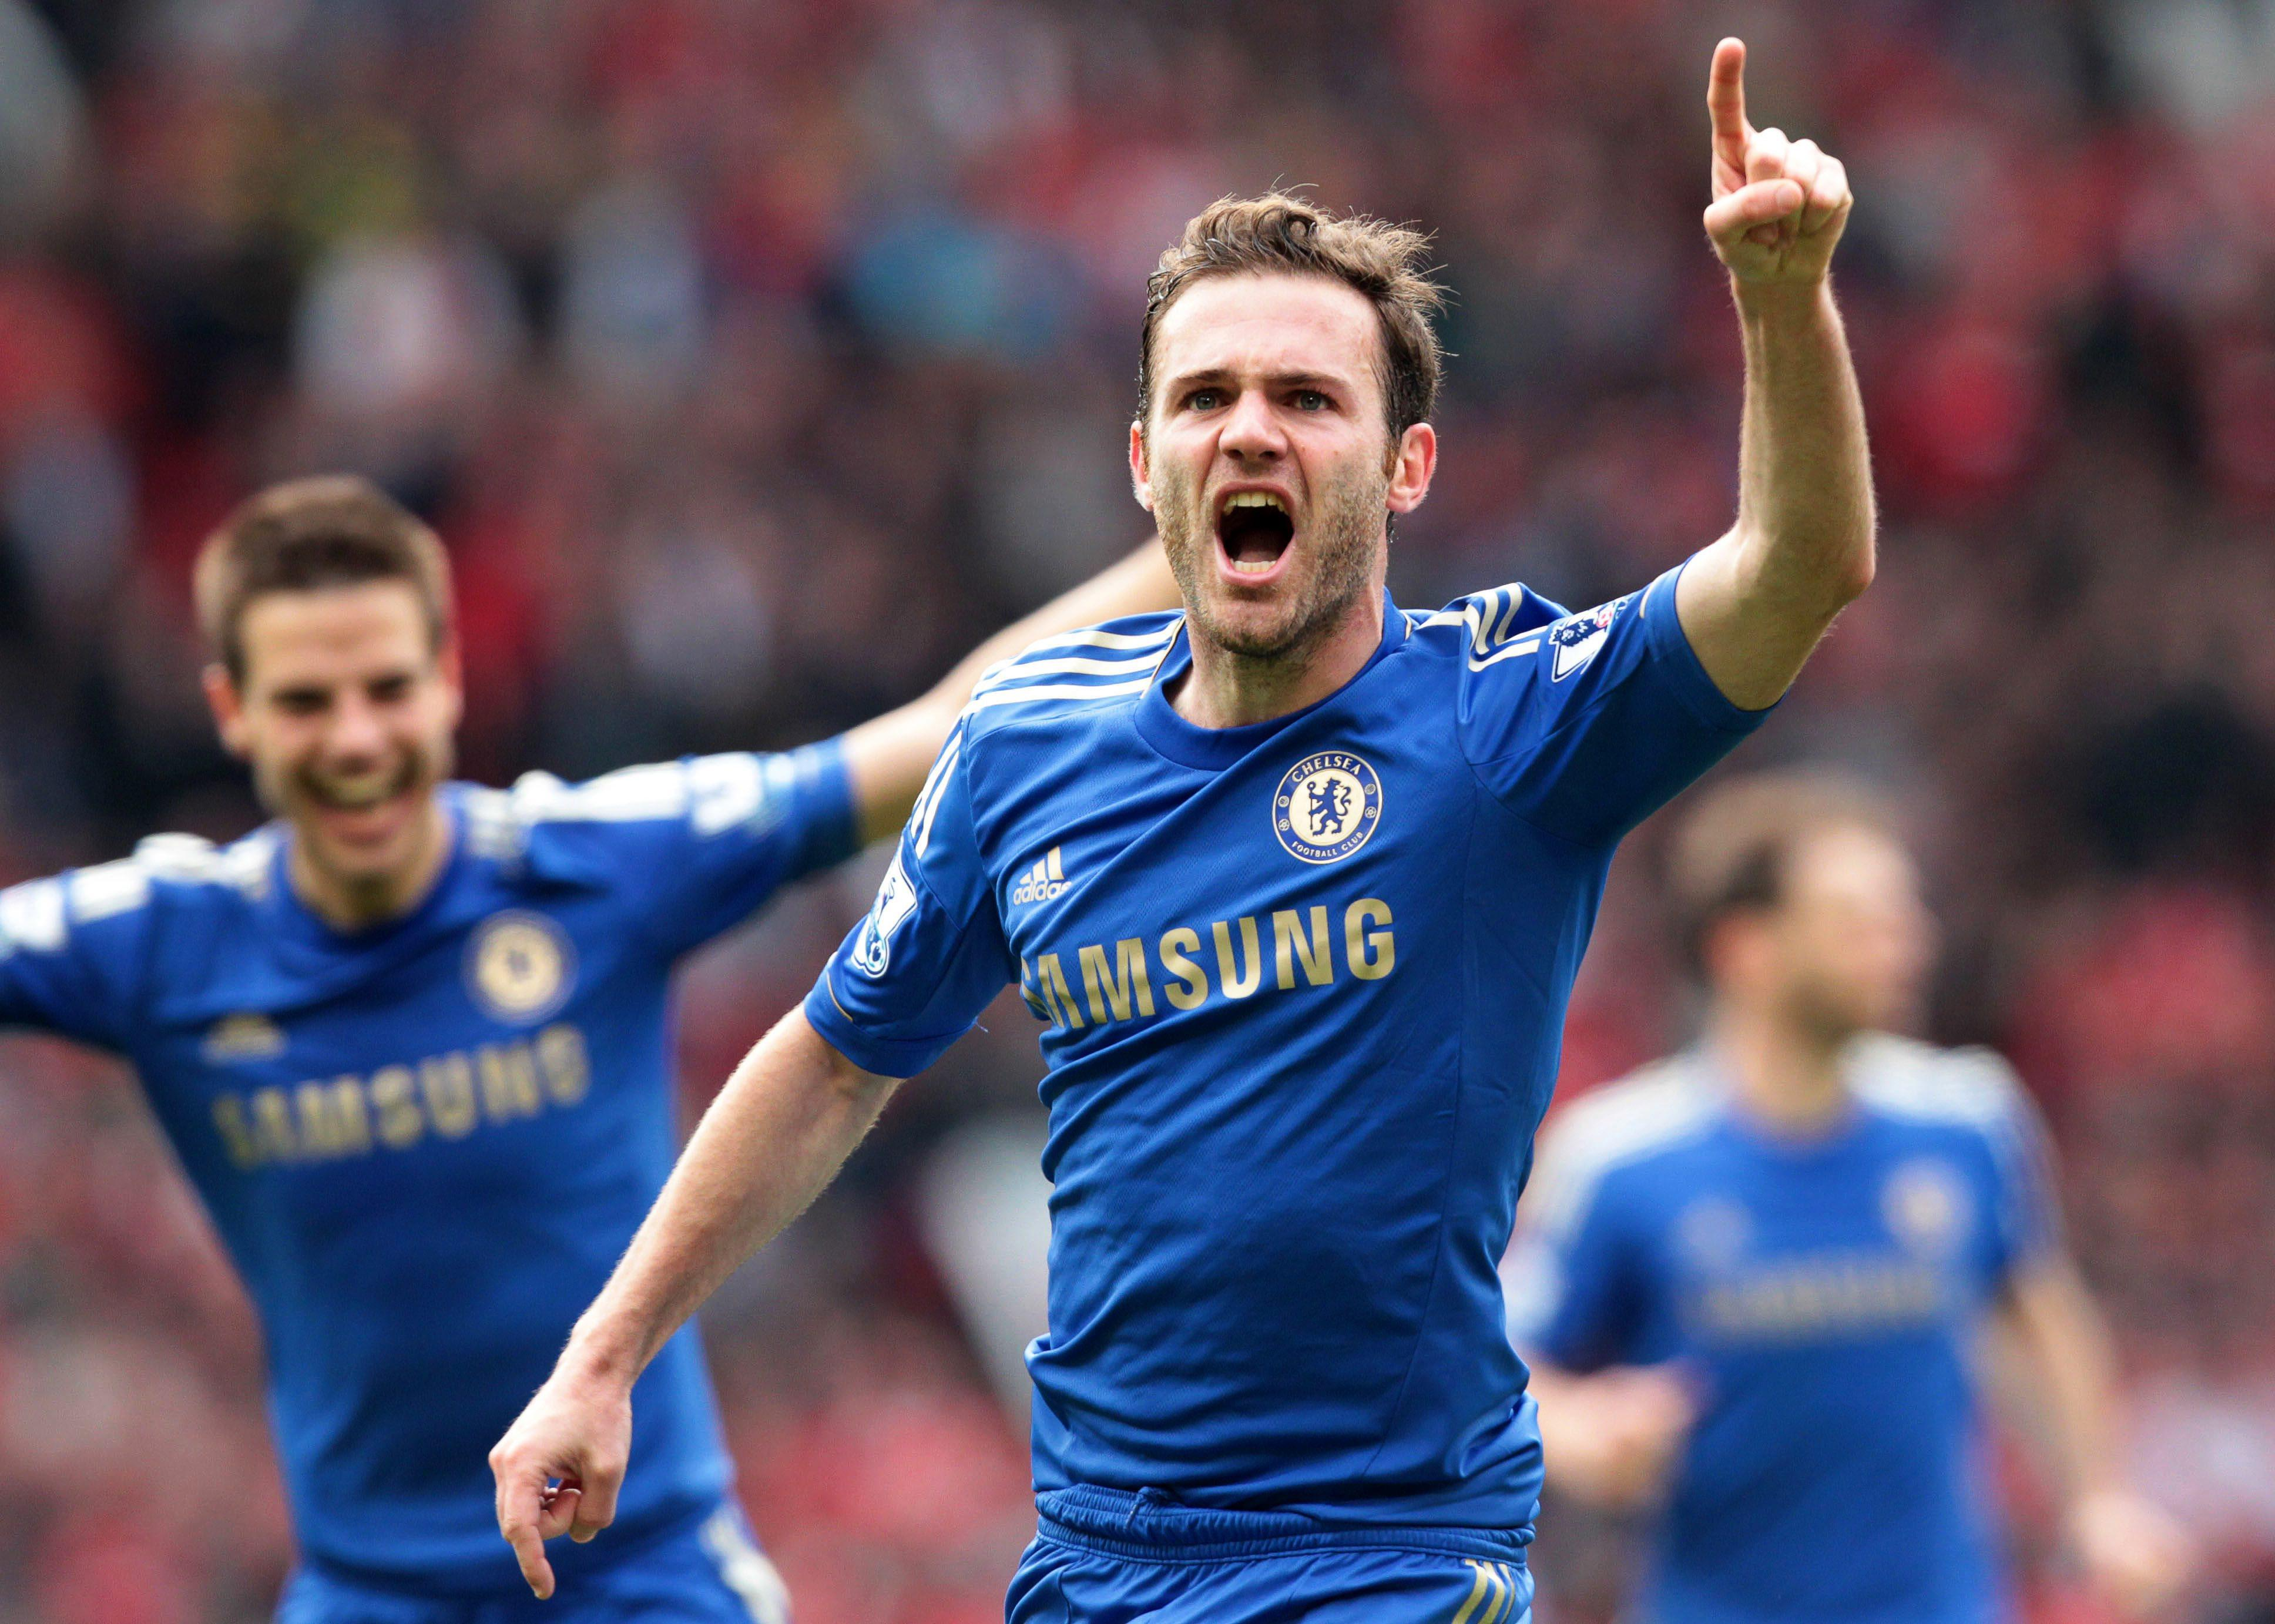 Feel like pure sh*t, just want the old Mata back